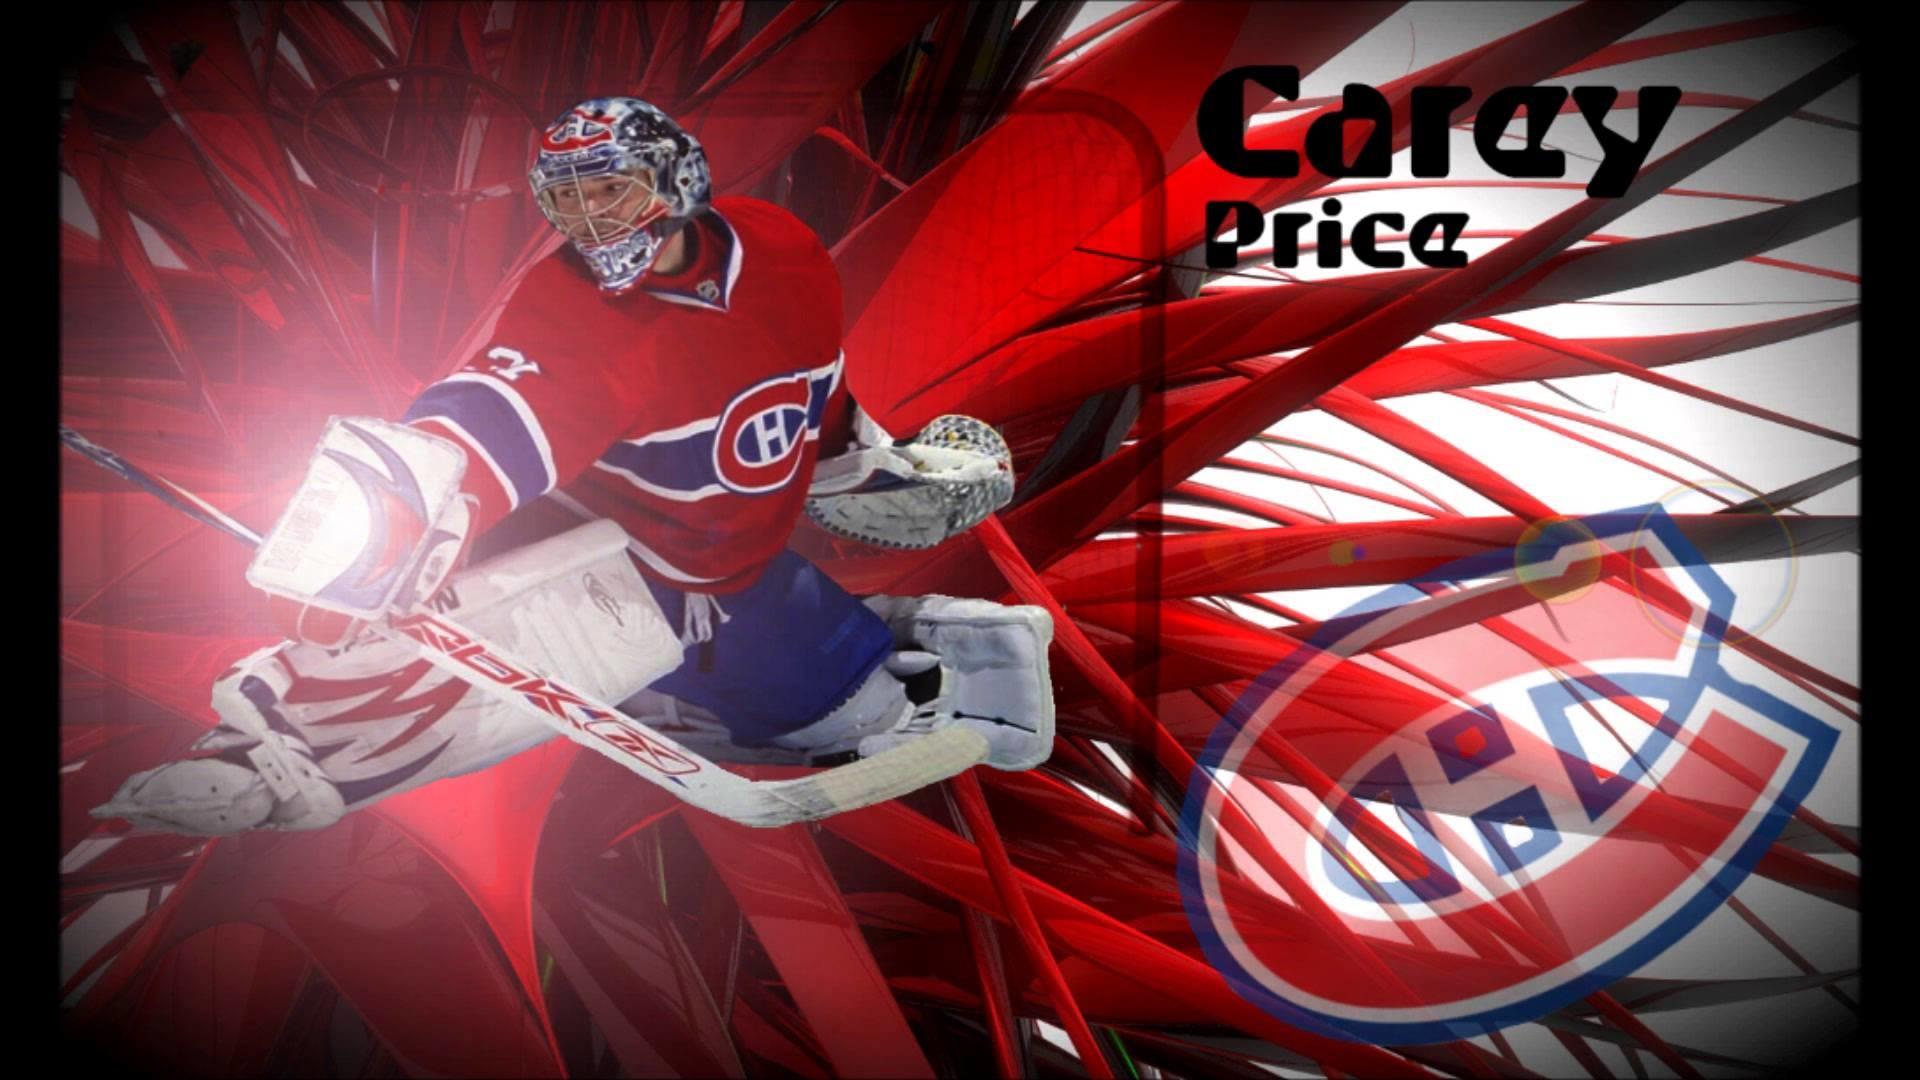 Res: 1920x1080, Montreal Canadiens images Montreal Canadiens - Carey Price HD wallpaper and  background photos